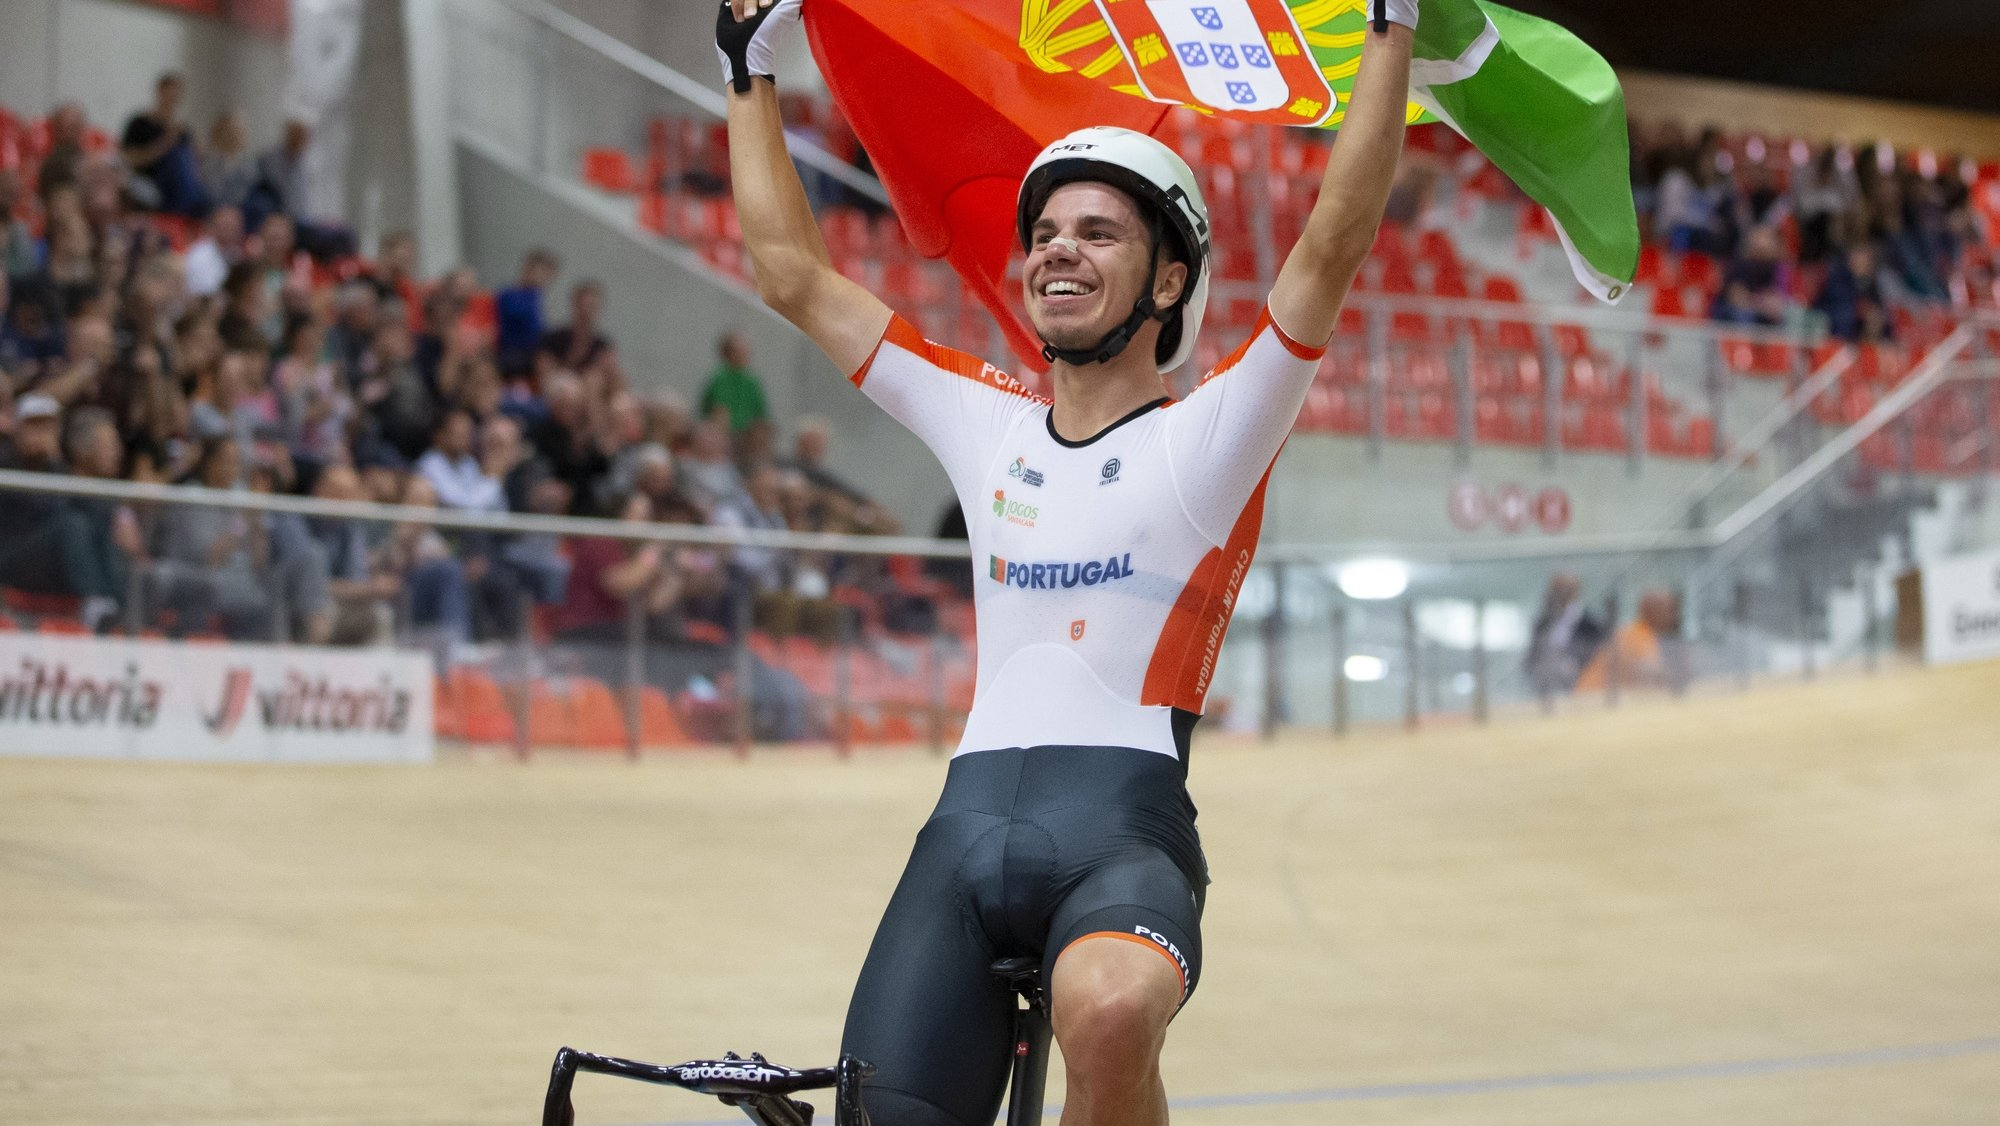 epa09511776 Portugal's Rui Oliveira celebrates after winning the men's scratch race during the UEC Track Cycling European Championships at the Velodrome Suisse in Grenchen, Switzerland, 07 October 2021.  EPA/PETER KLAUNZER